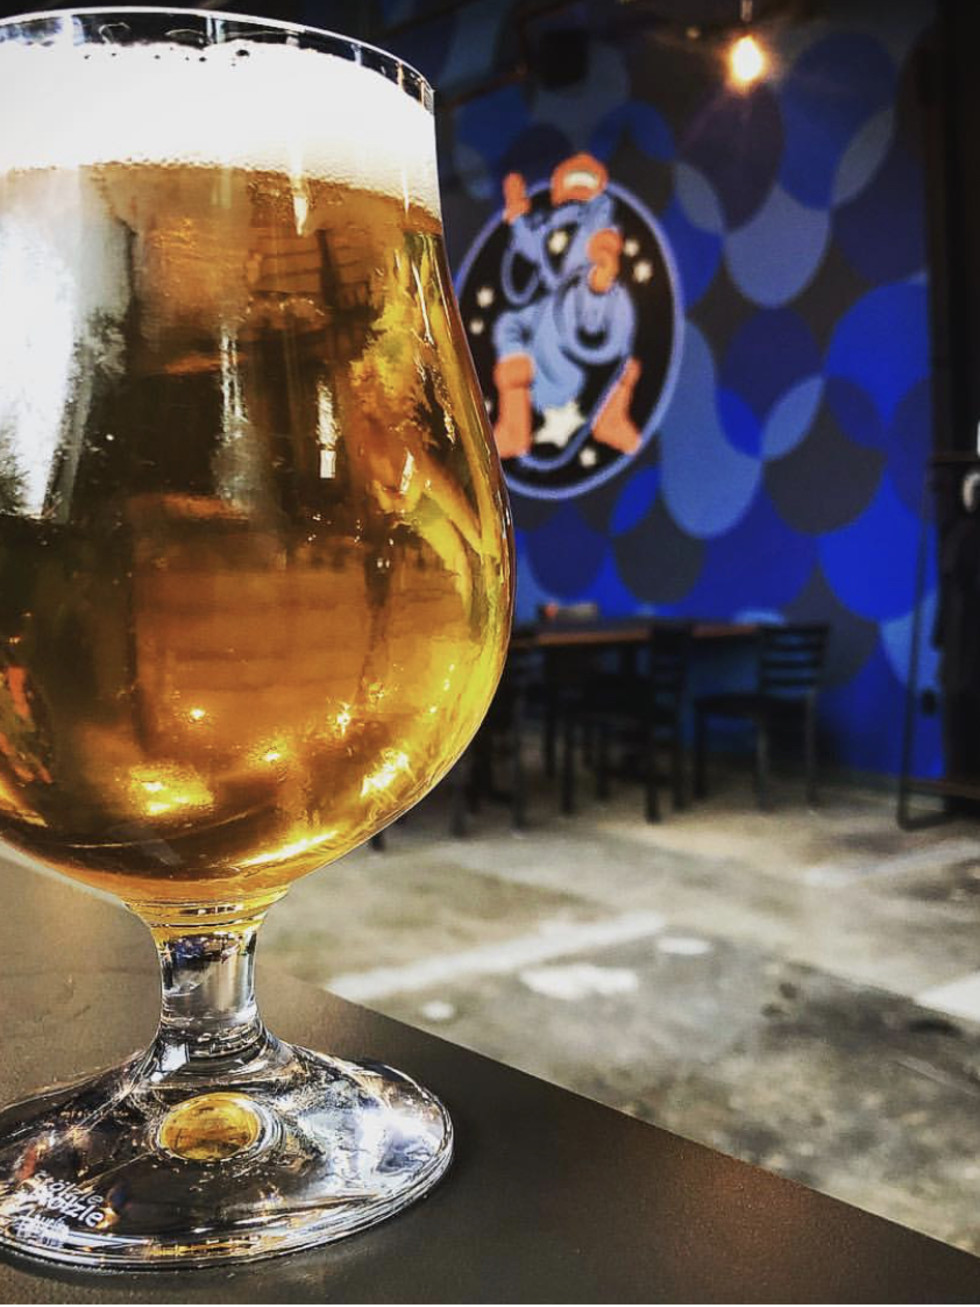 Astral Brewing beer in glass